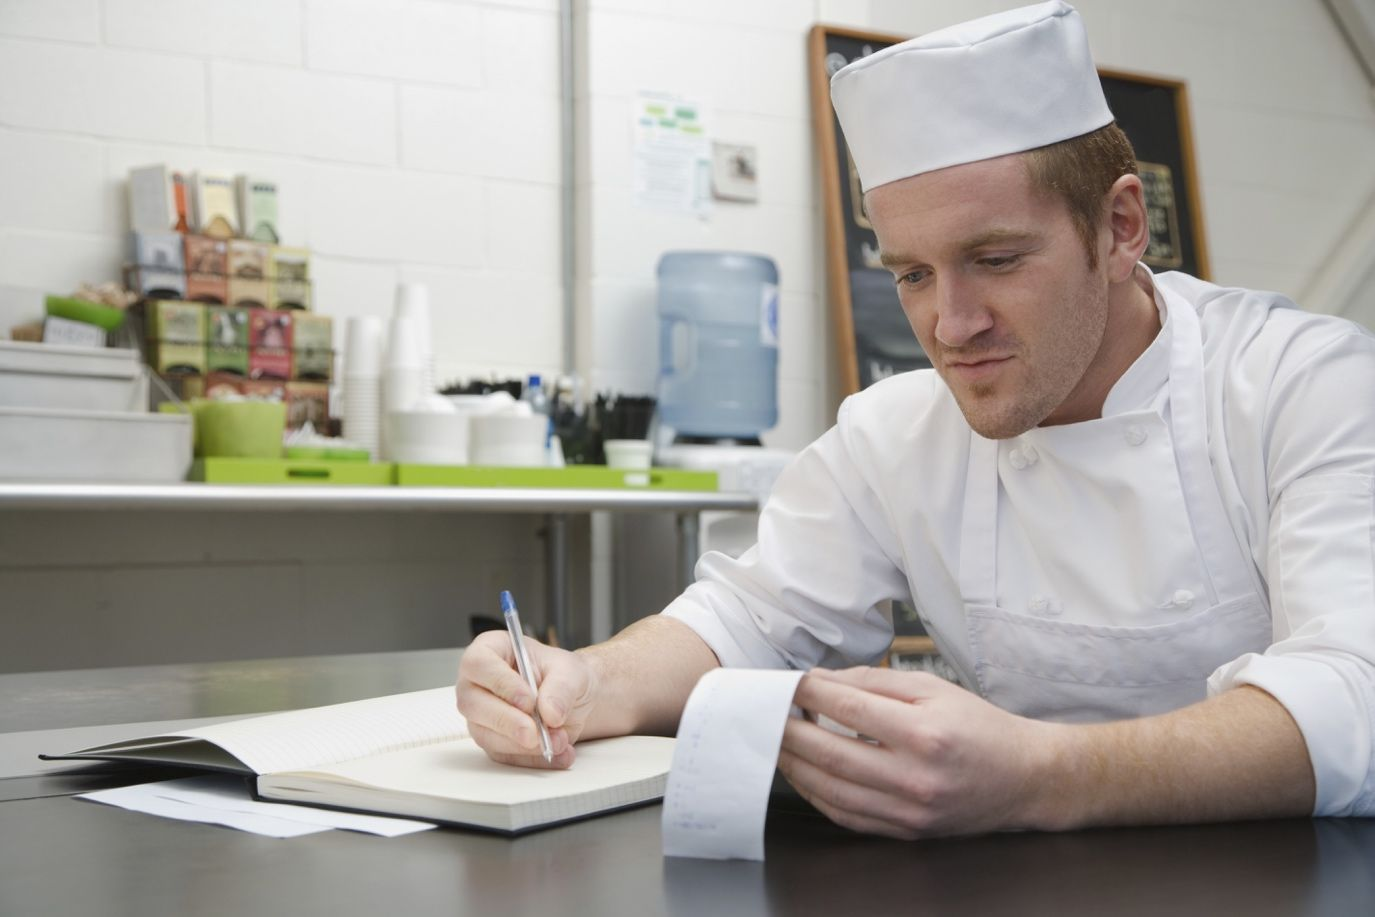 How to avoid downtime in your professional kitchen